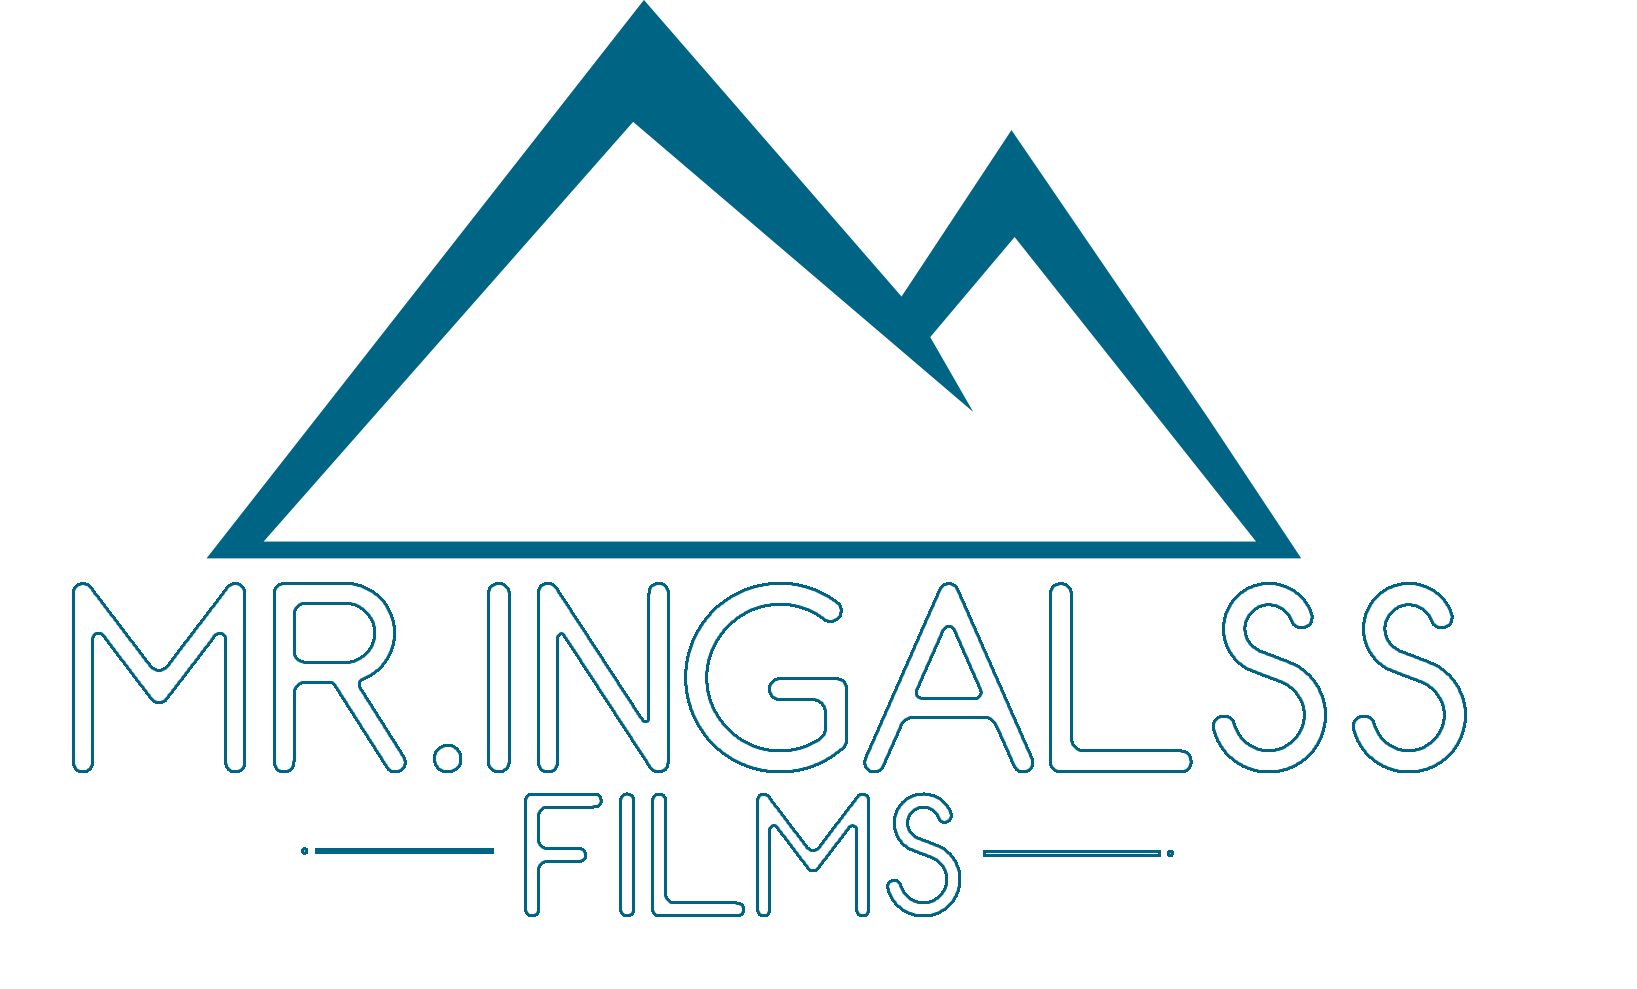 Mr.Ingalss Films